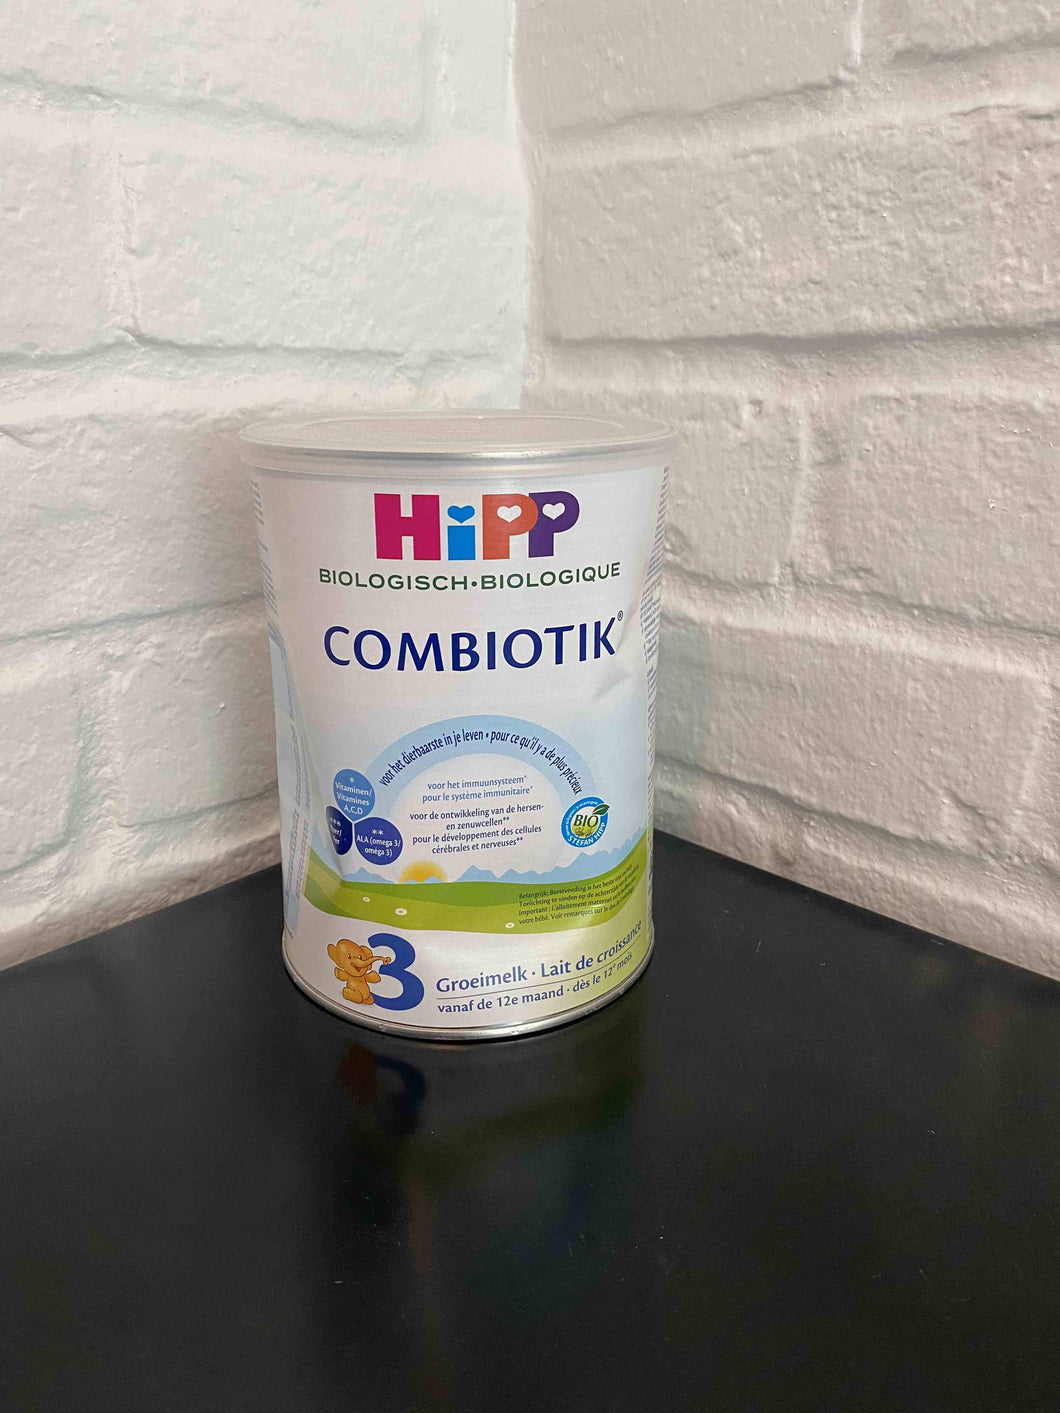 HiPP DUTCH Stage 3 Combiotic Toddler (900g) Formula Organic Formula betterorganicformula Dented Can - single